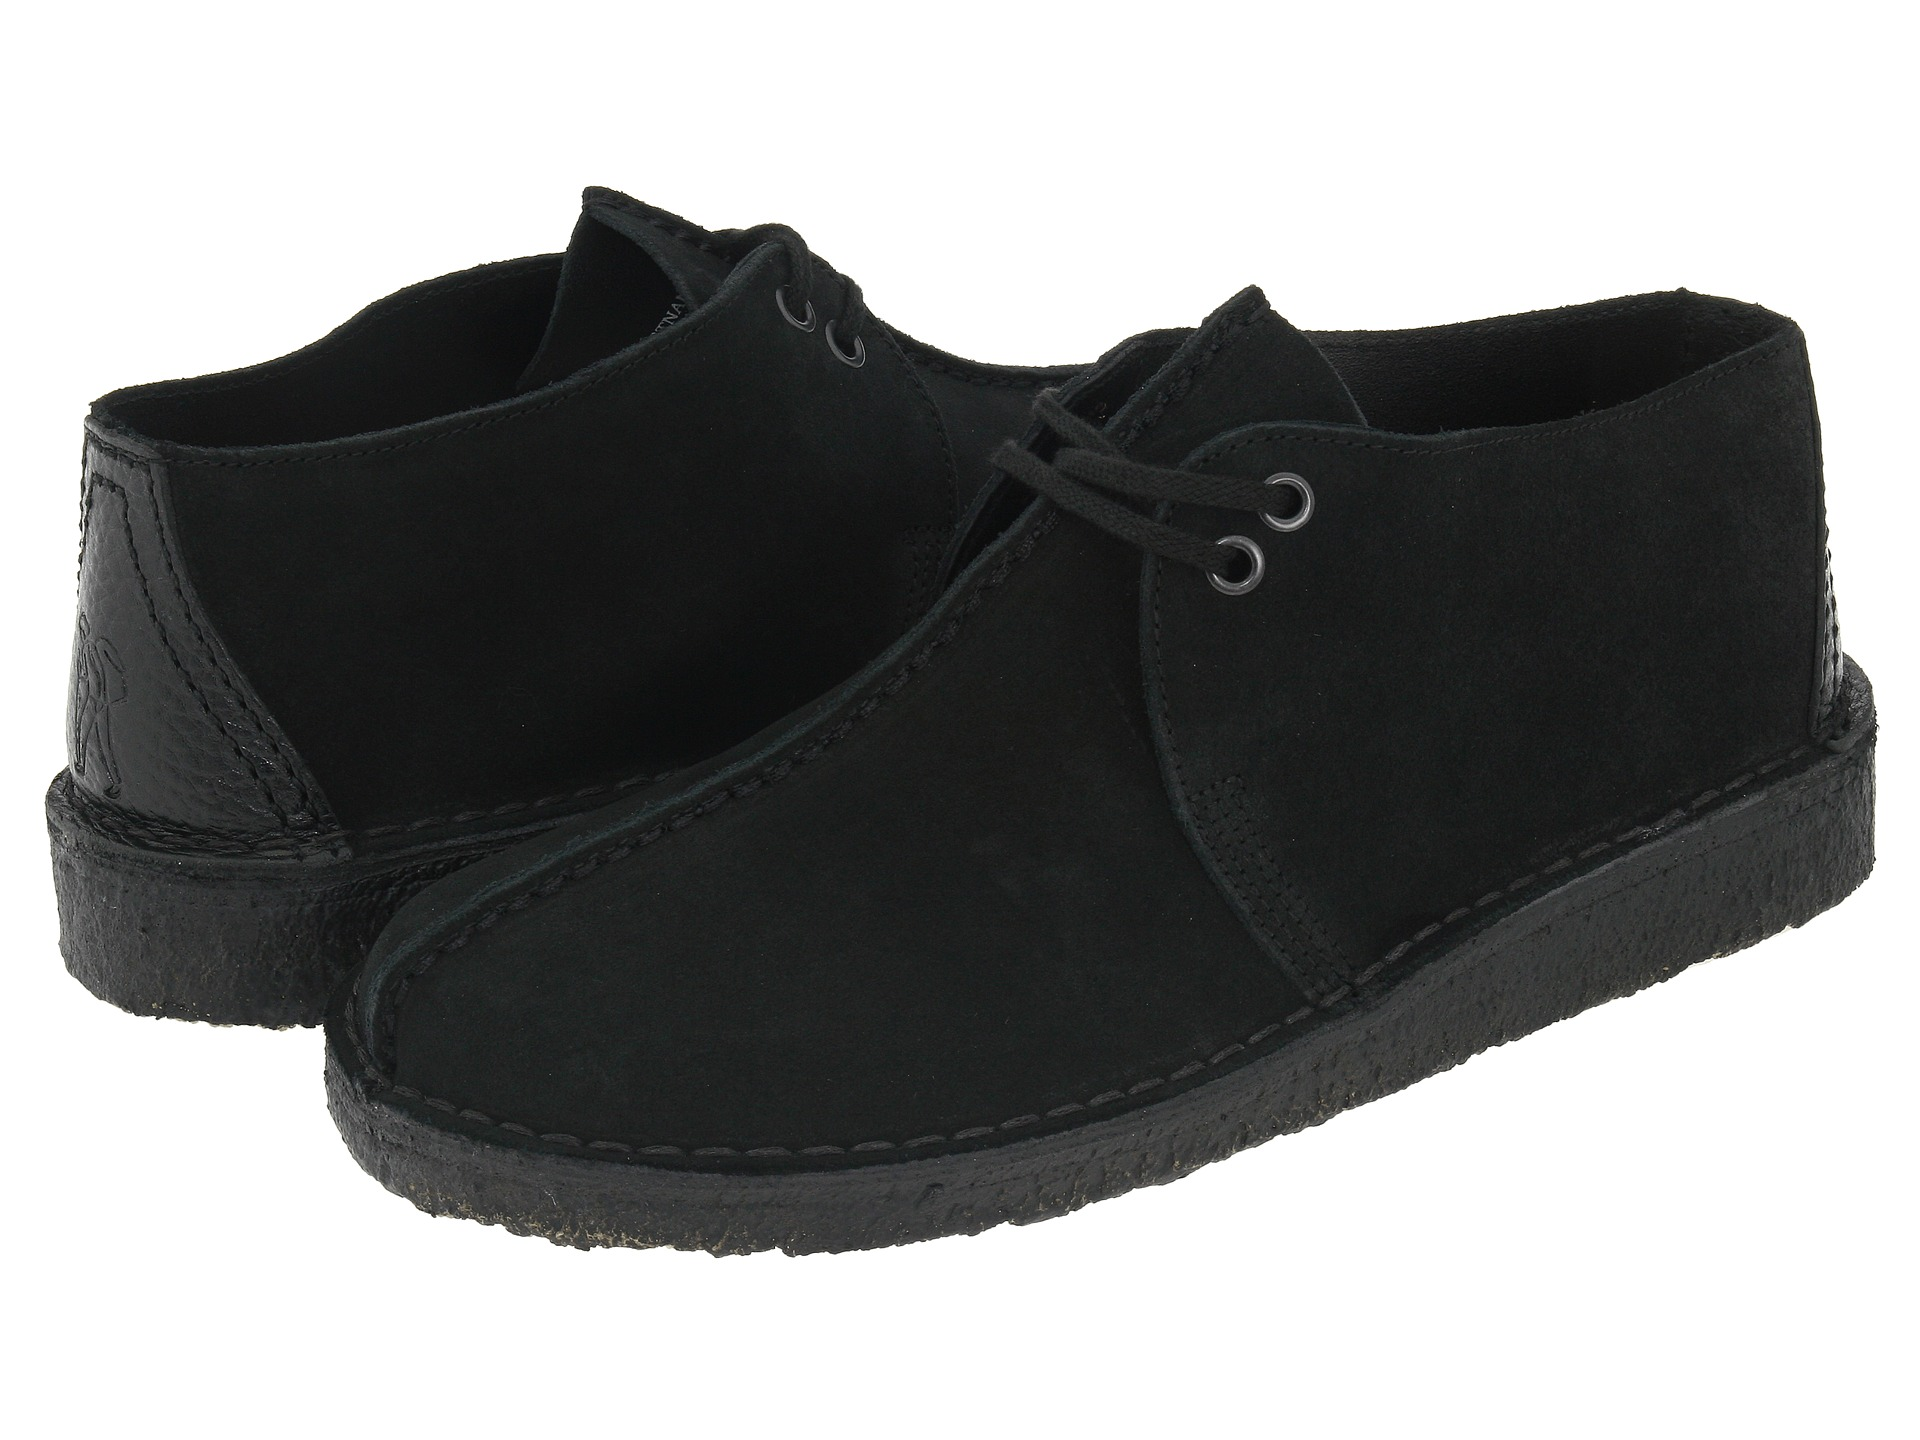 Are Clarks Mens Shoes Good